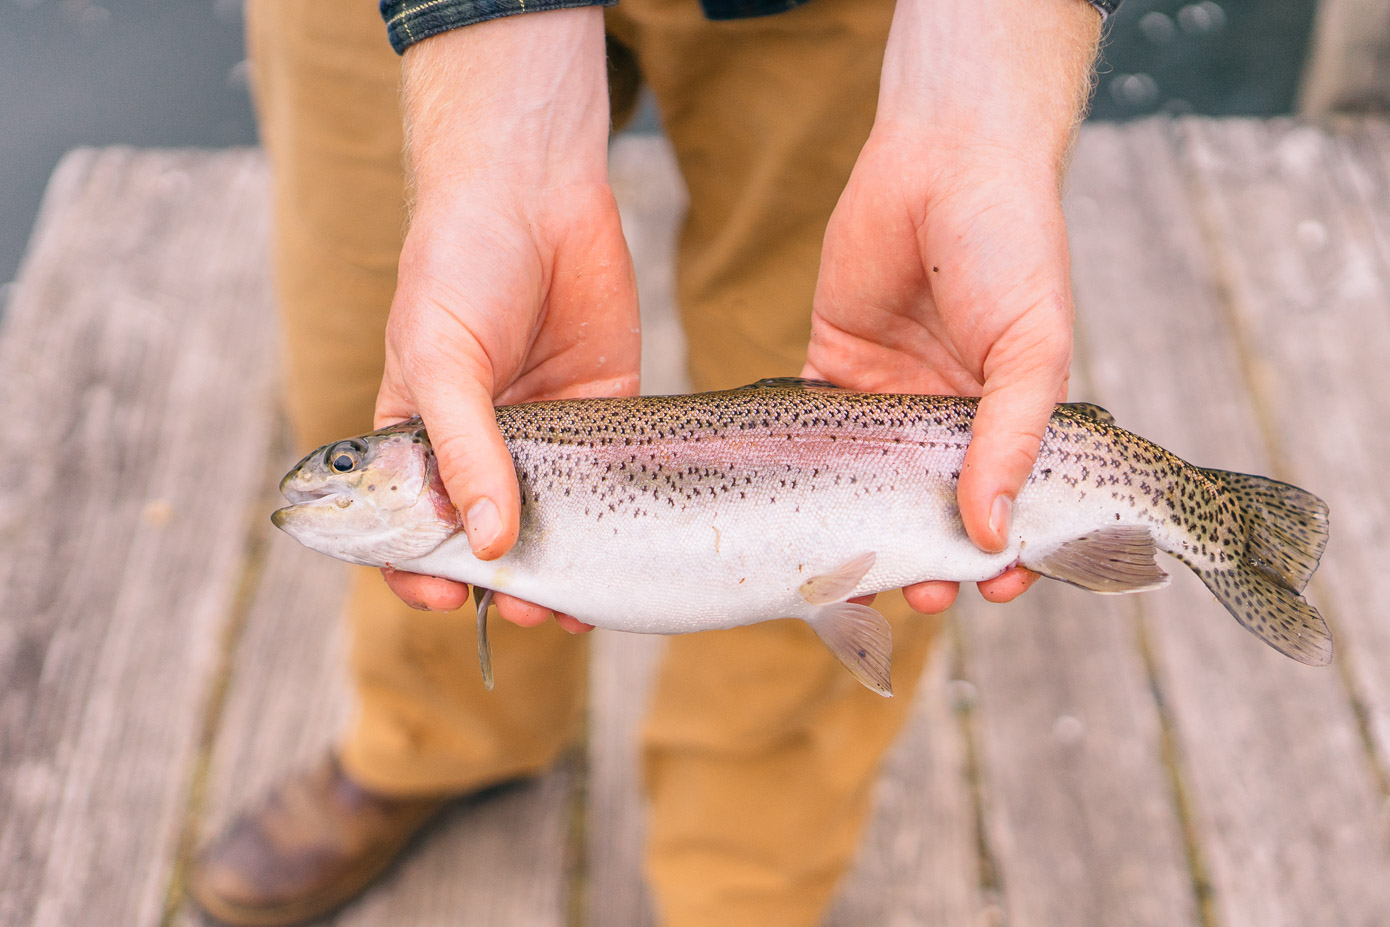 Cataloochee Ranch Review | Where to Go Fishing in NC Mountains | Louella Reese Life & Style Blog